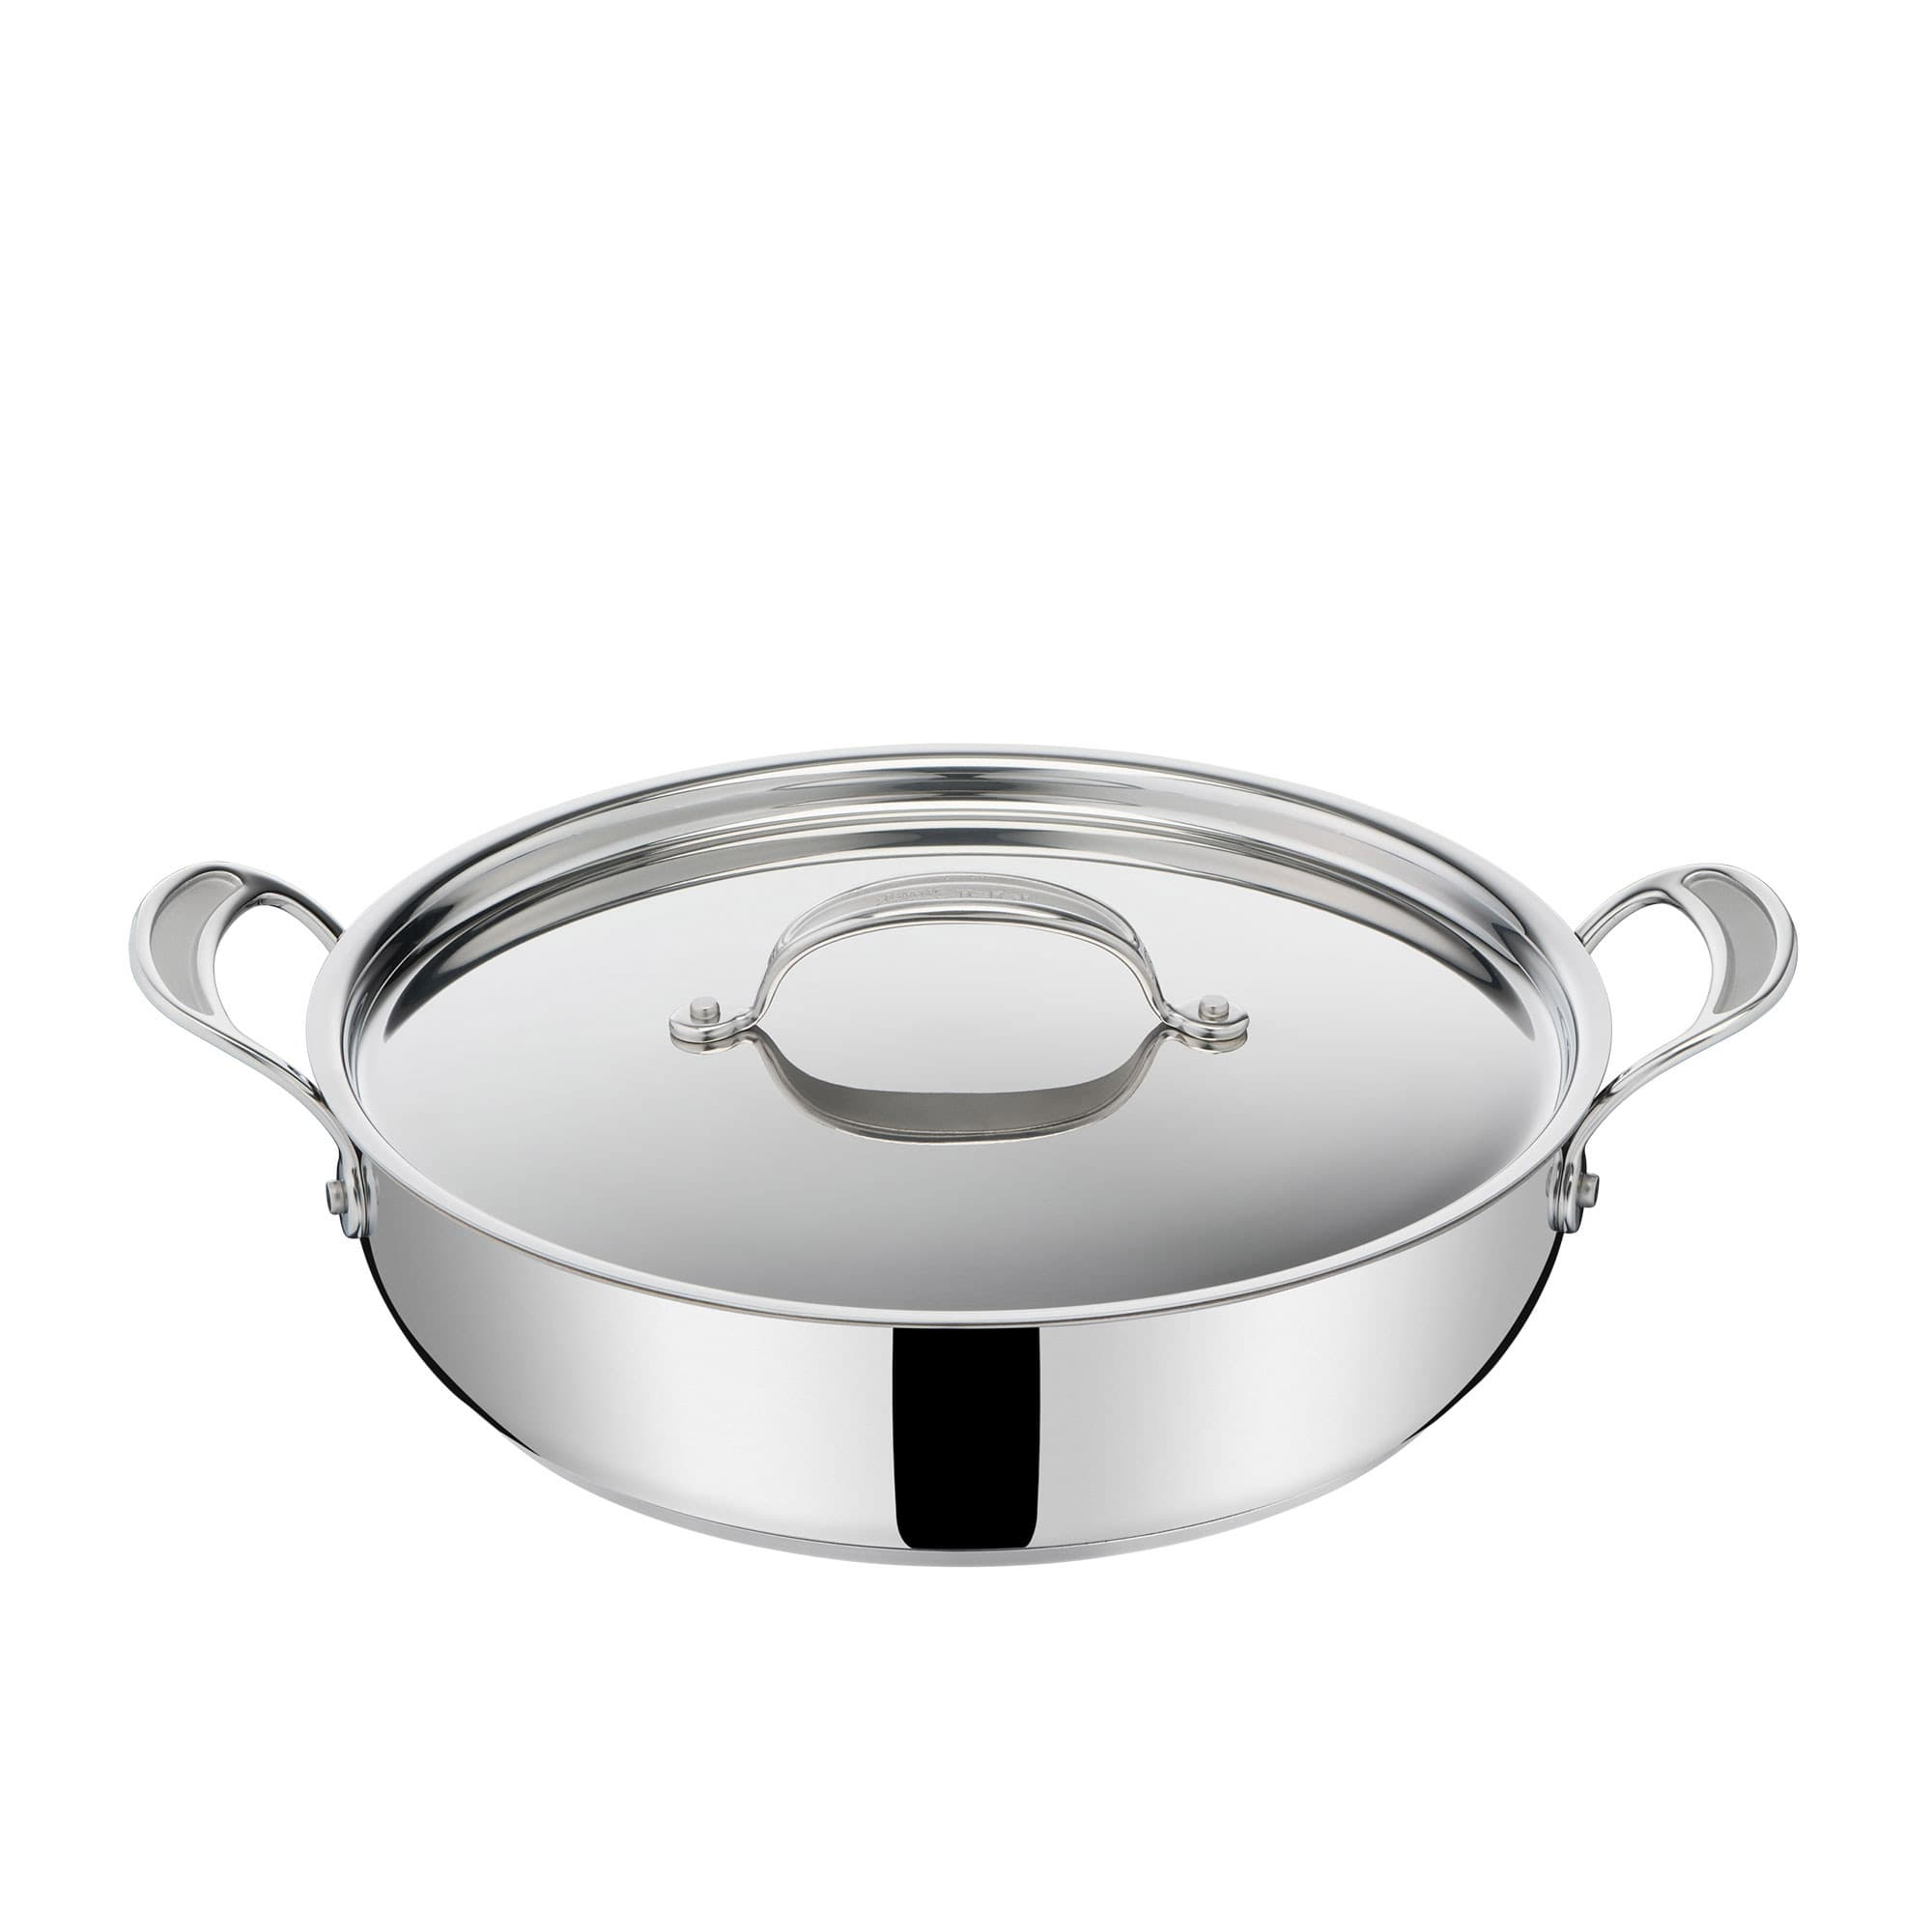 Jamie Oliver Cook's Classic Stainless Steel Induction Shallow Pan 30cm